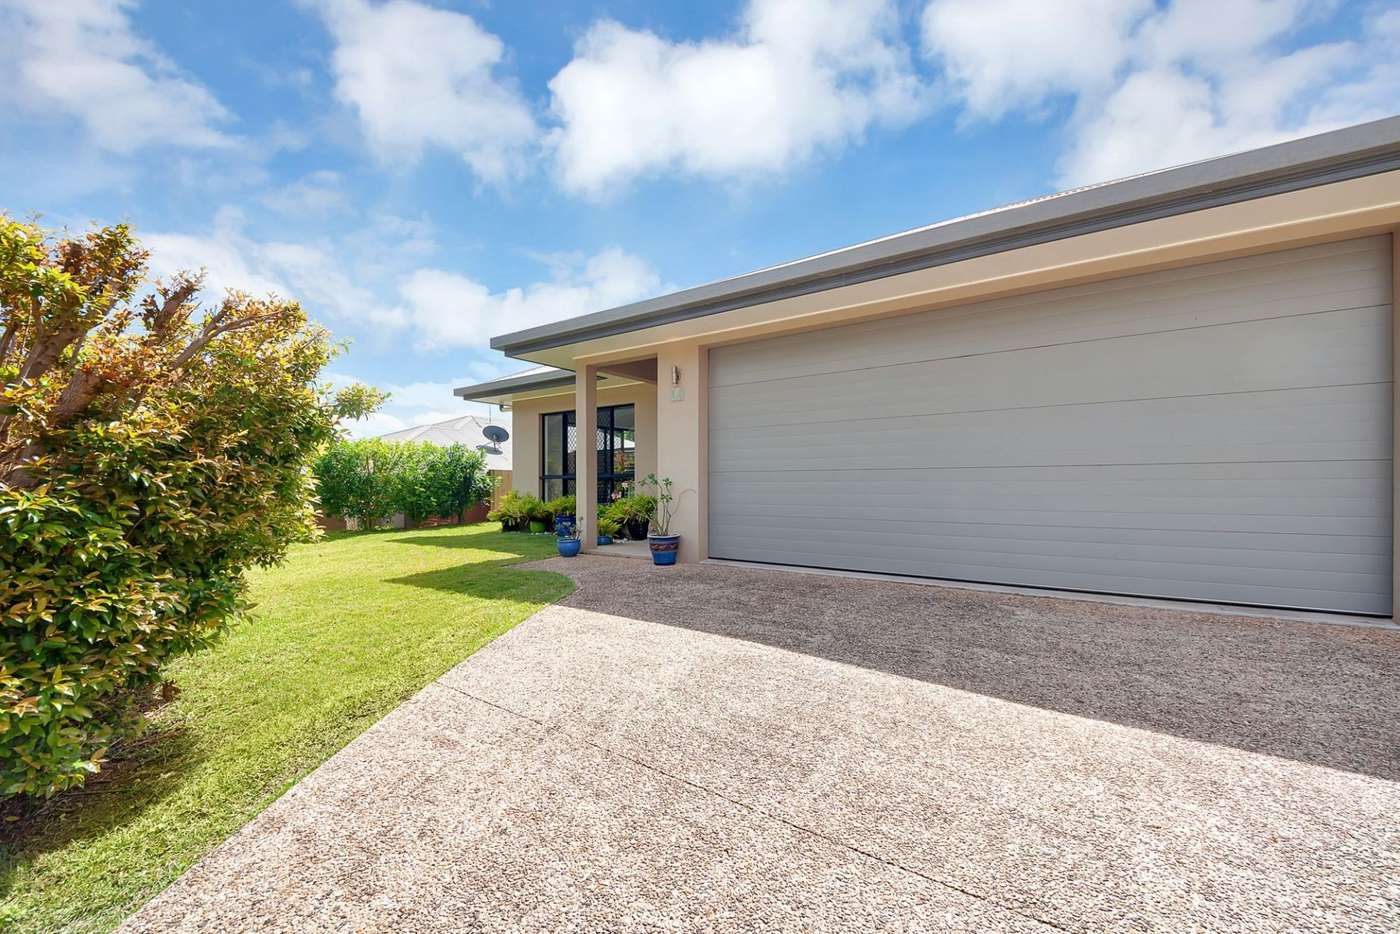 Fifth view of Homely house listing, 11 Willoughby Close, Redlynch QLD 4870